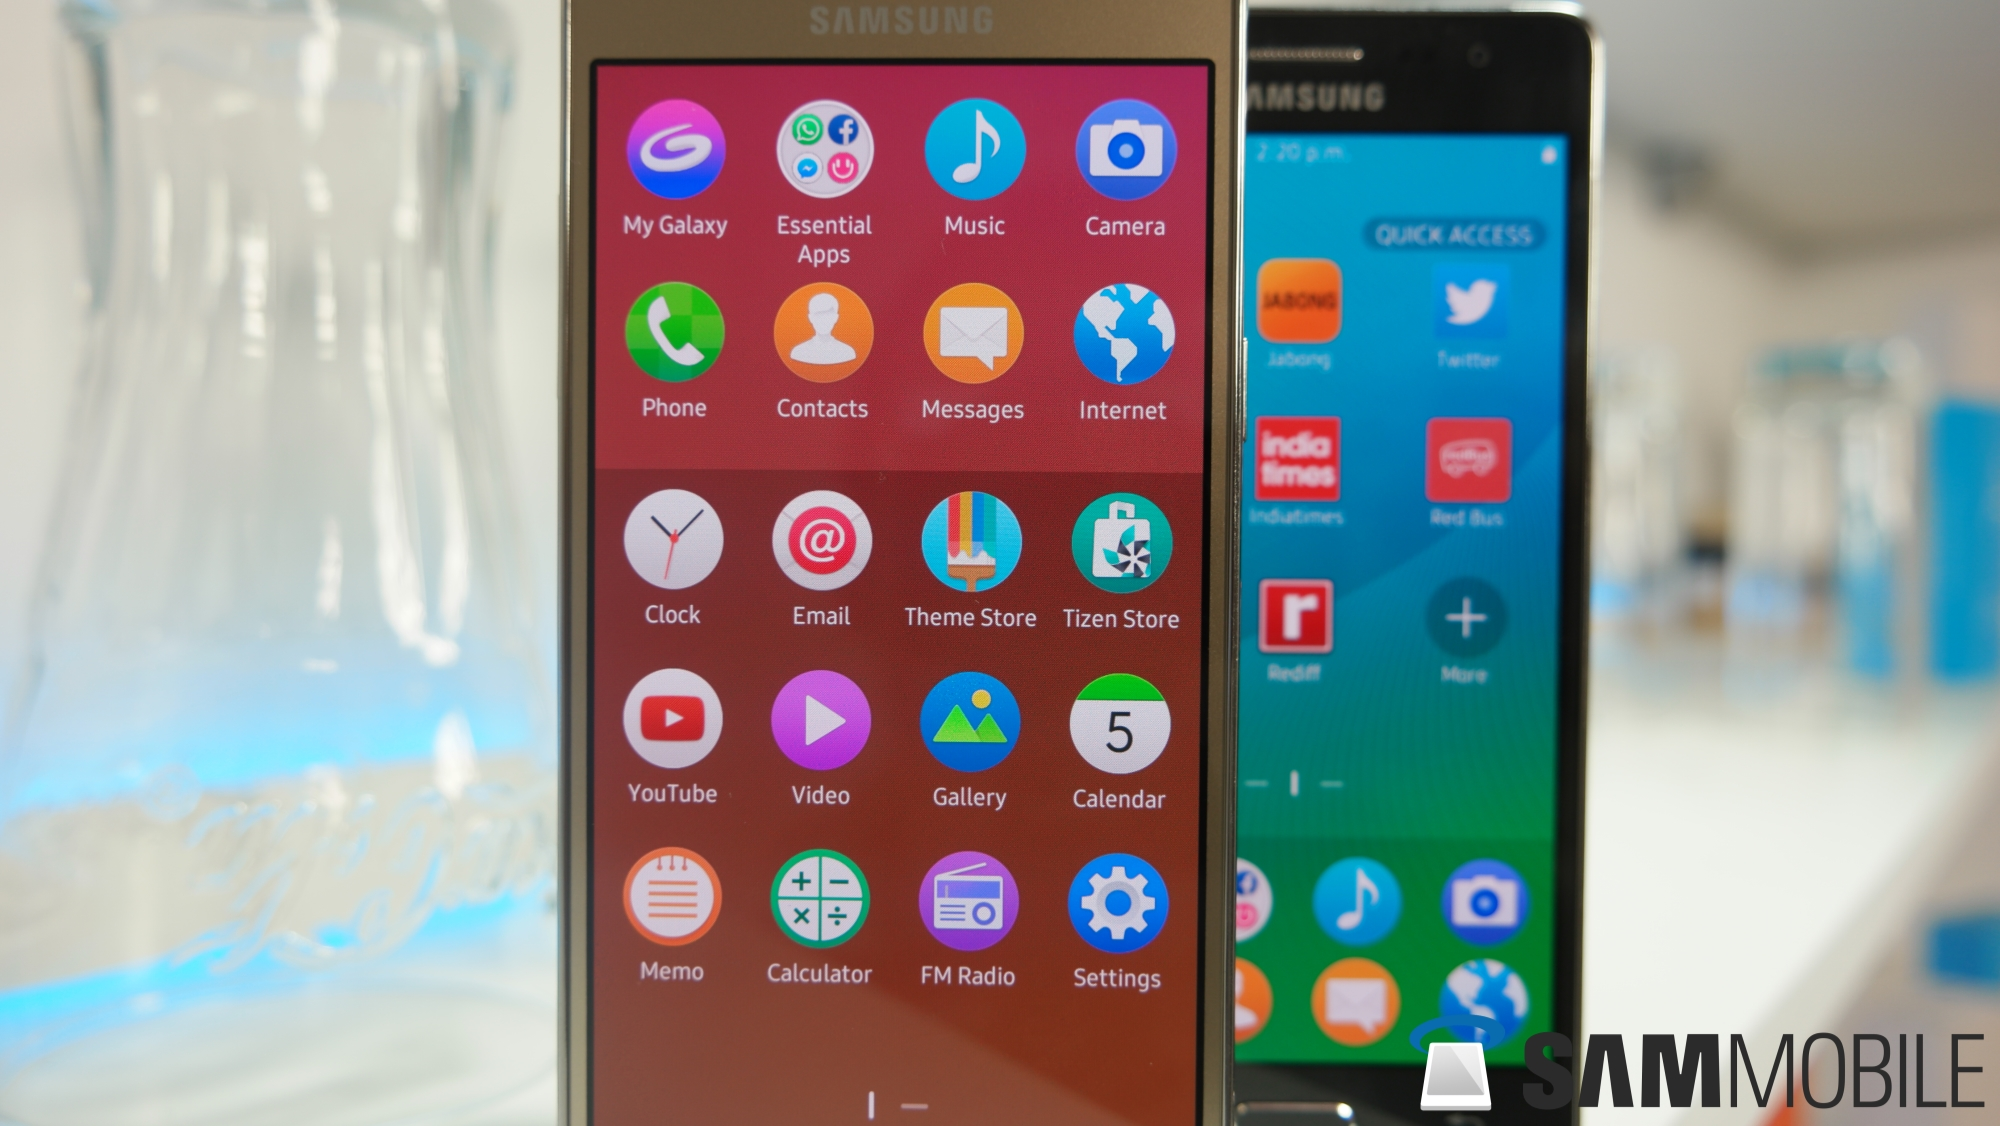 My Galaxy discontinuation on Tizen phones the final nail in